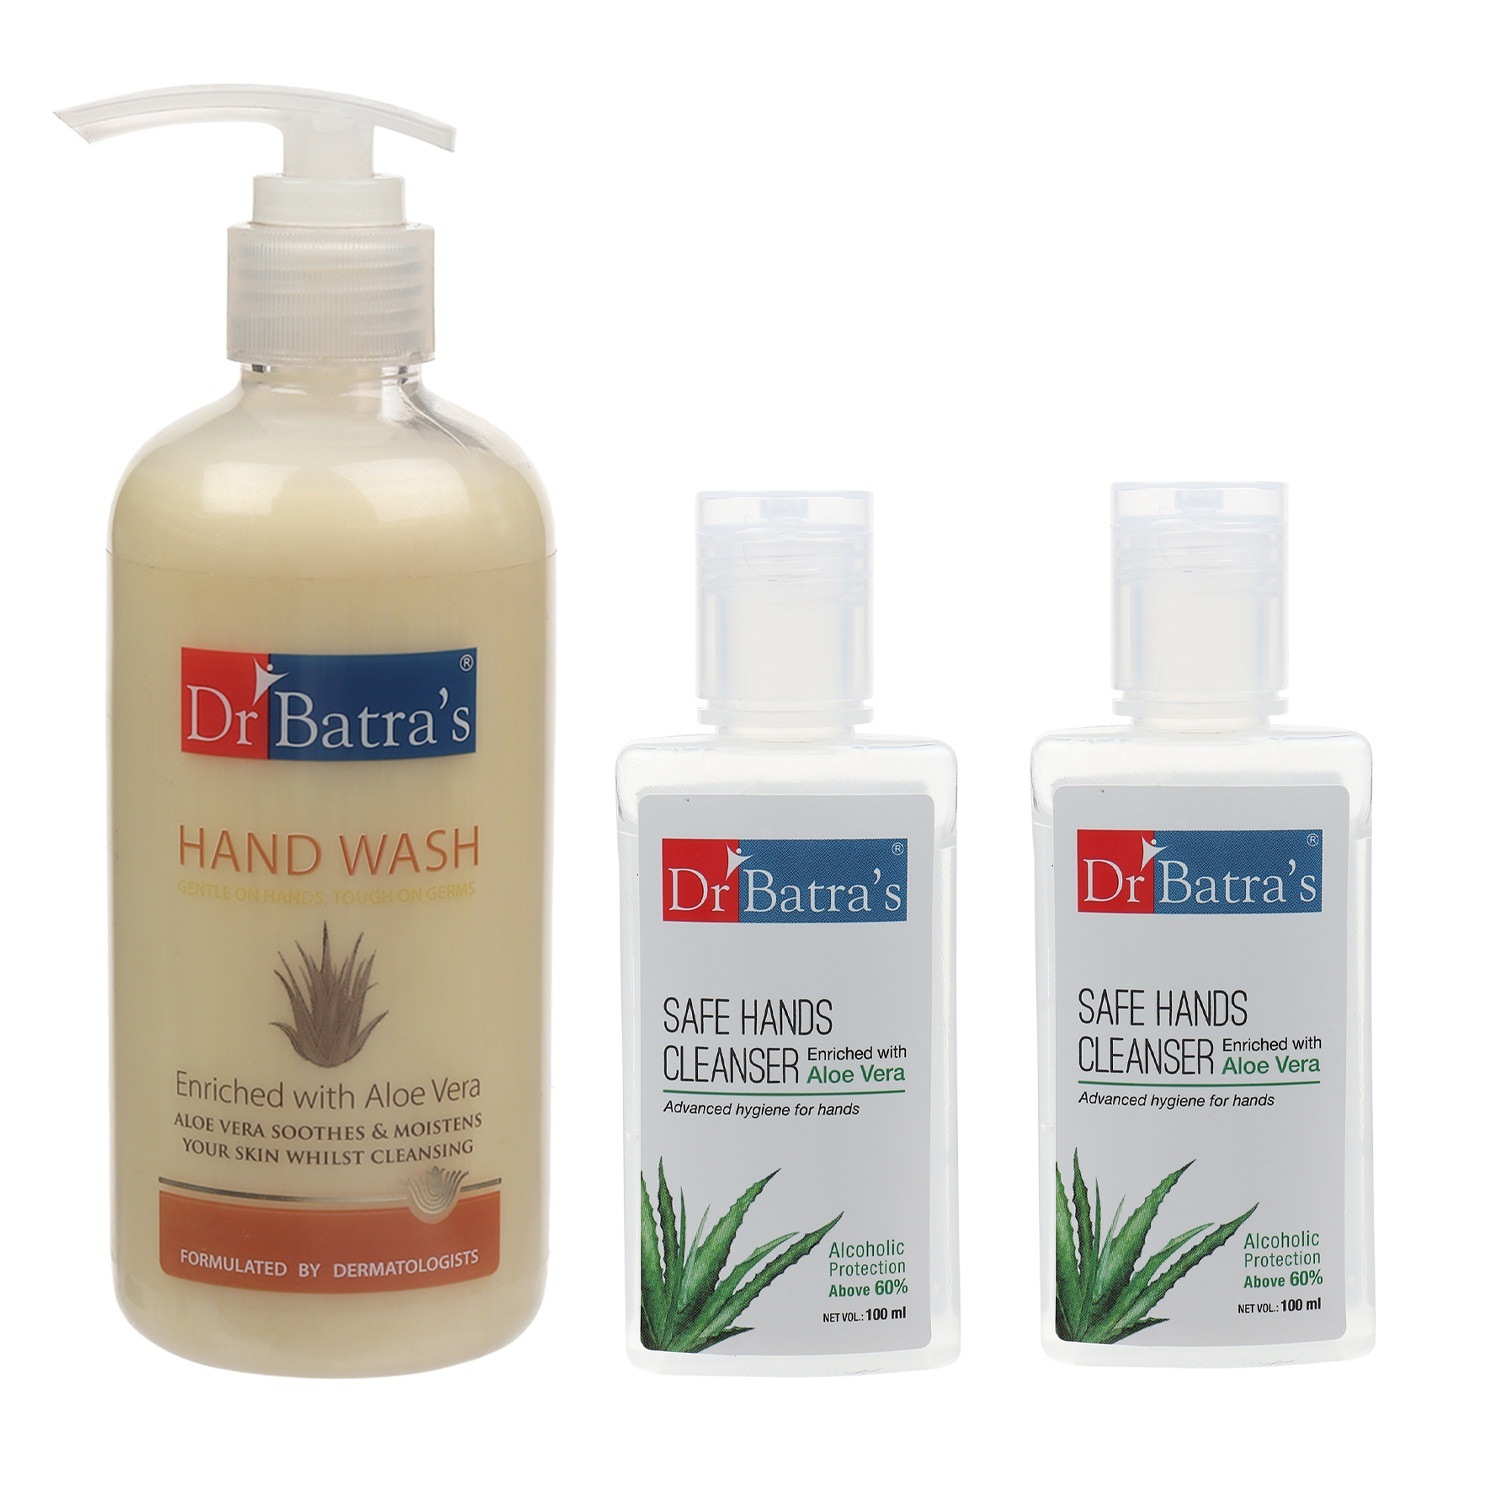 Dr Batra's | Dr Batra's Hand Wash 300 ml and Safe Hand Cleanser 200 ml (Pack of 3)